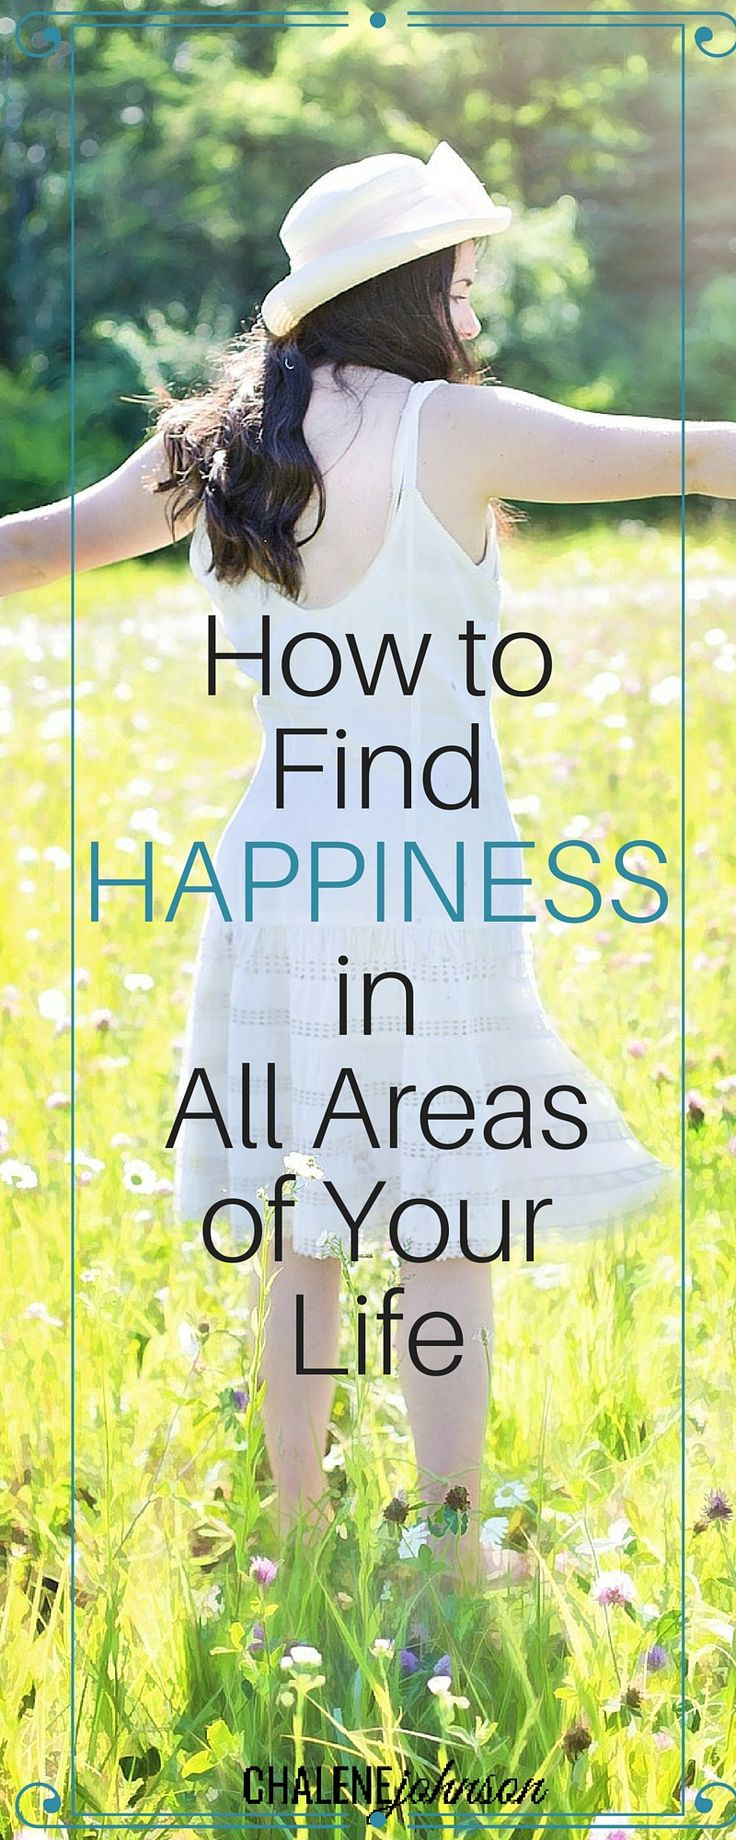 How to find happiness in all areas of your life